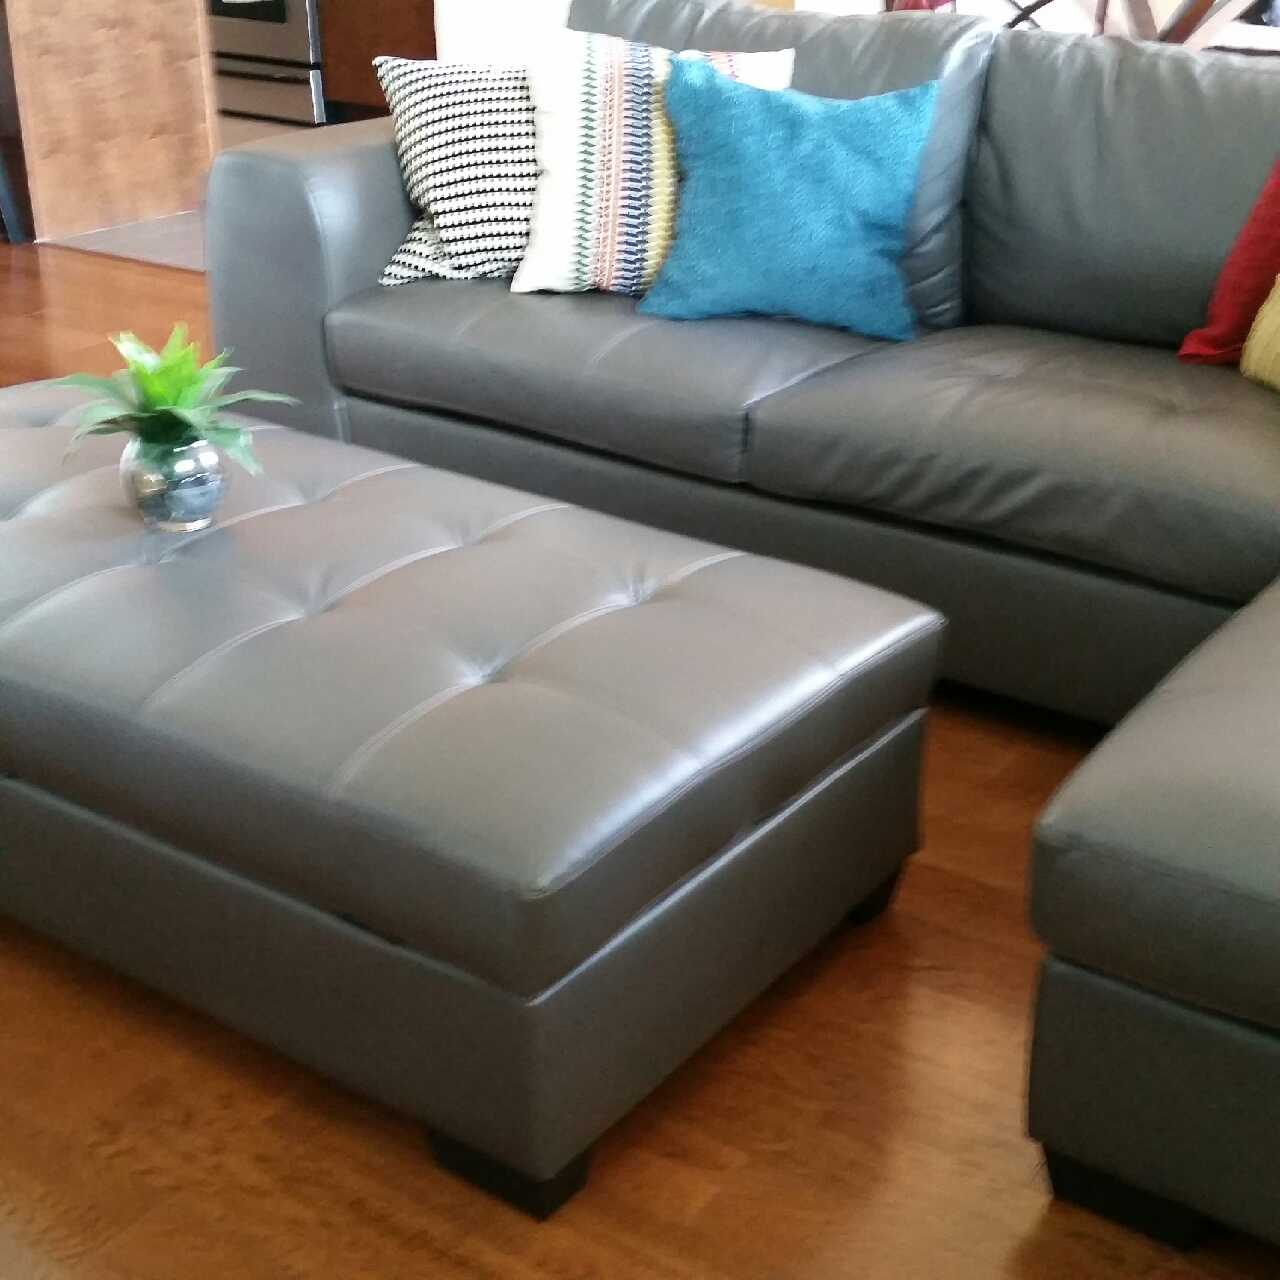 Letgo joaquin grey leather sectional sofa in dallas tx for Sectional sofa dallas tx